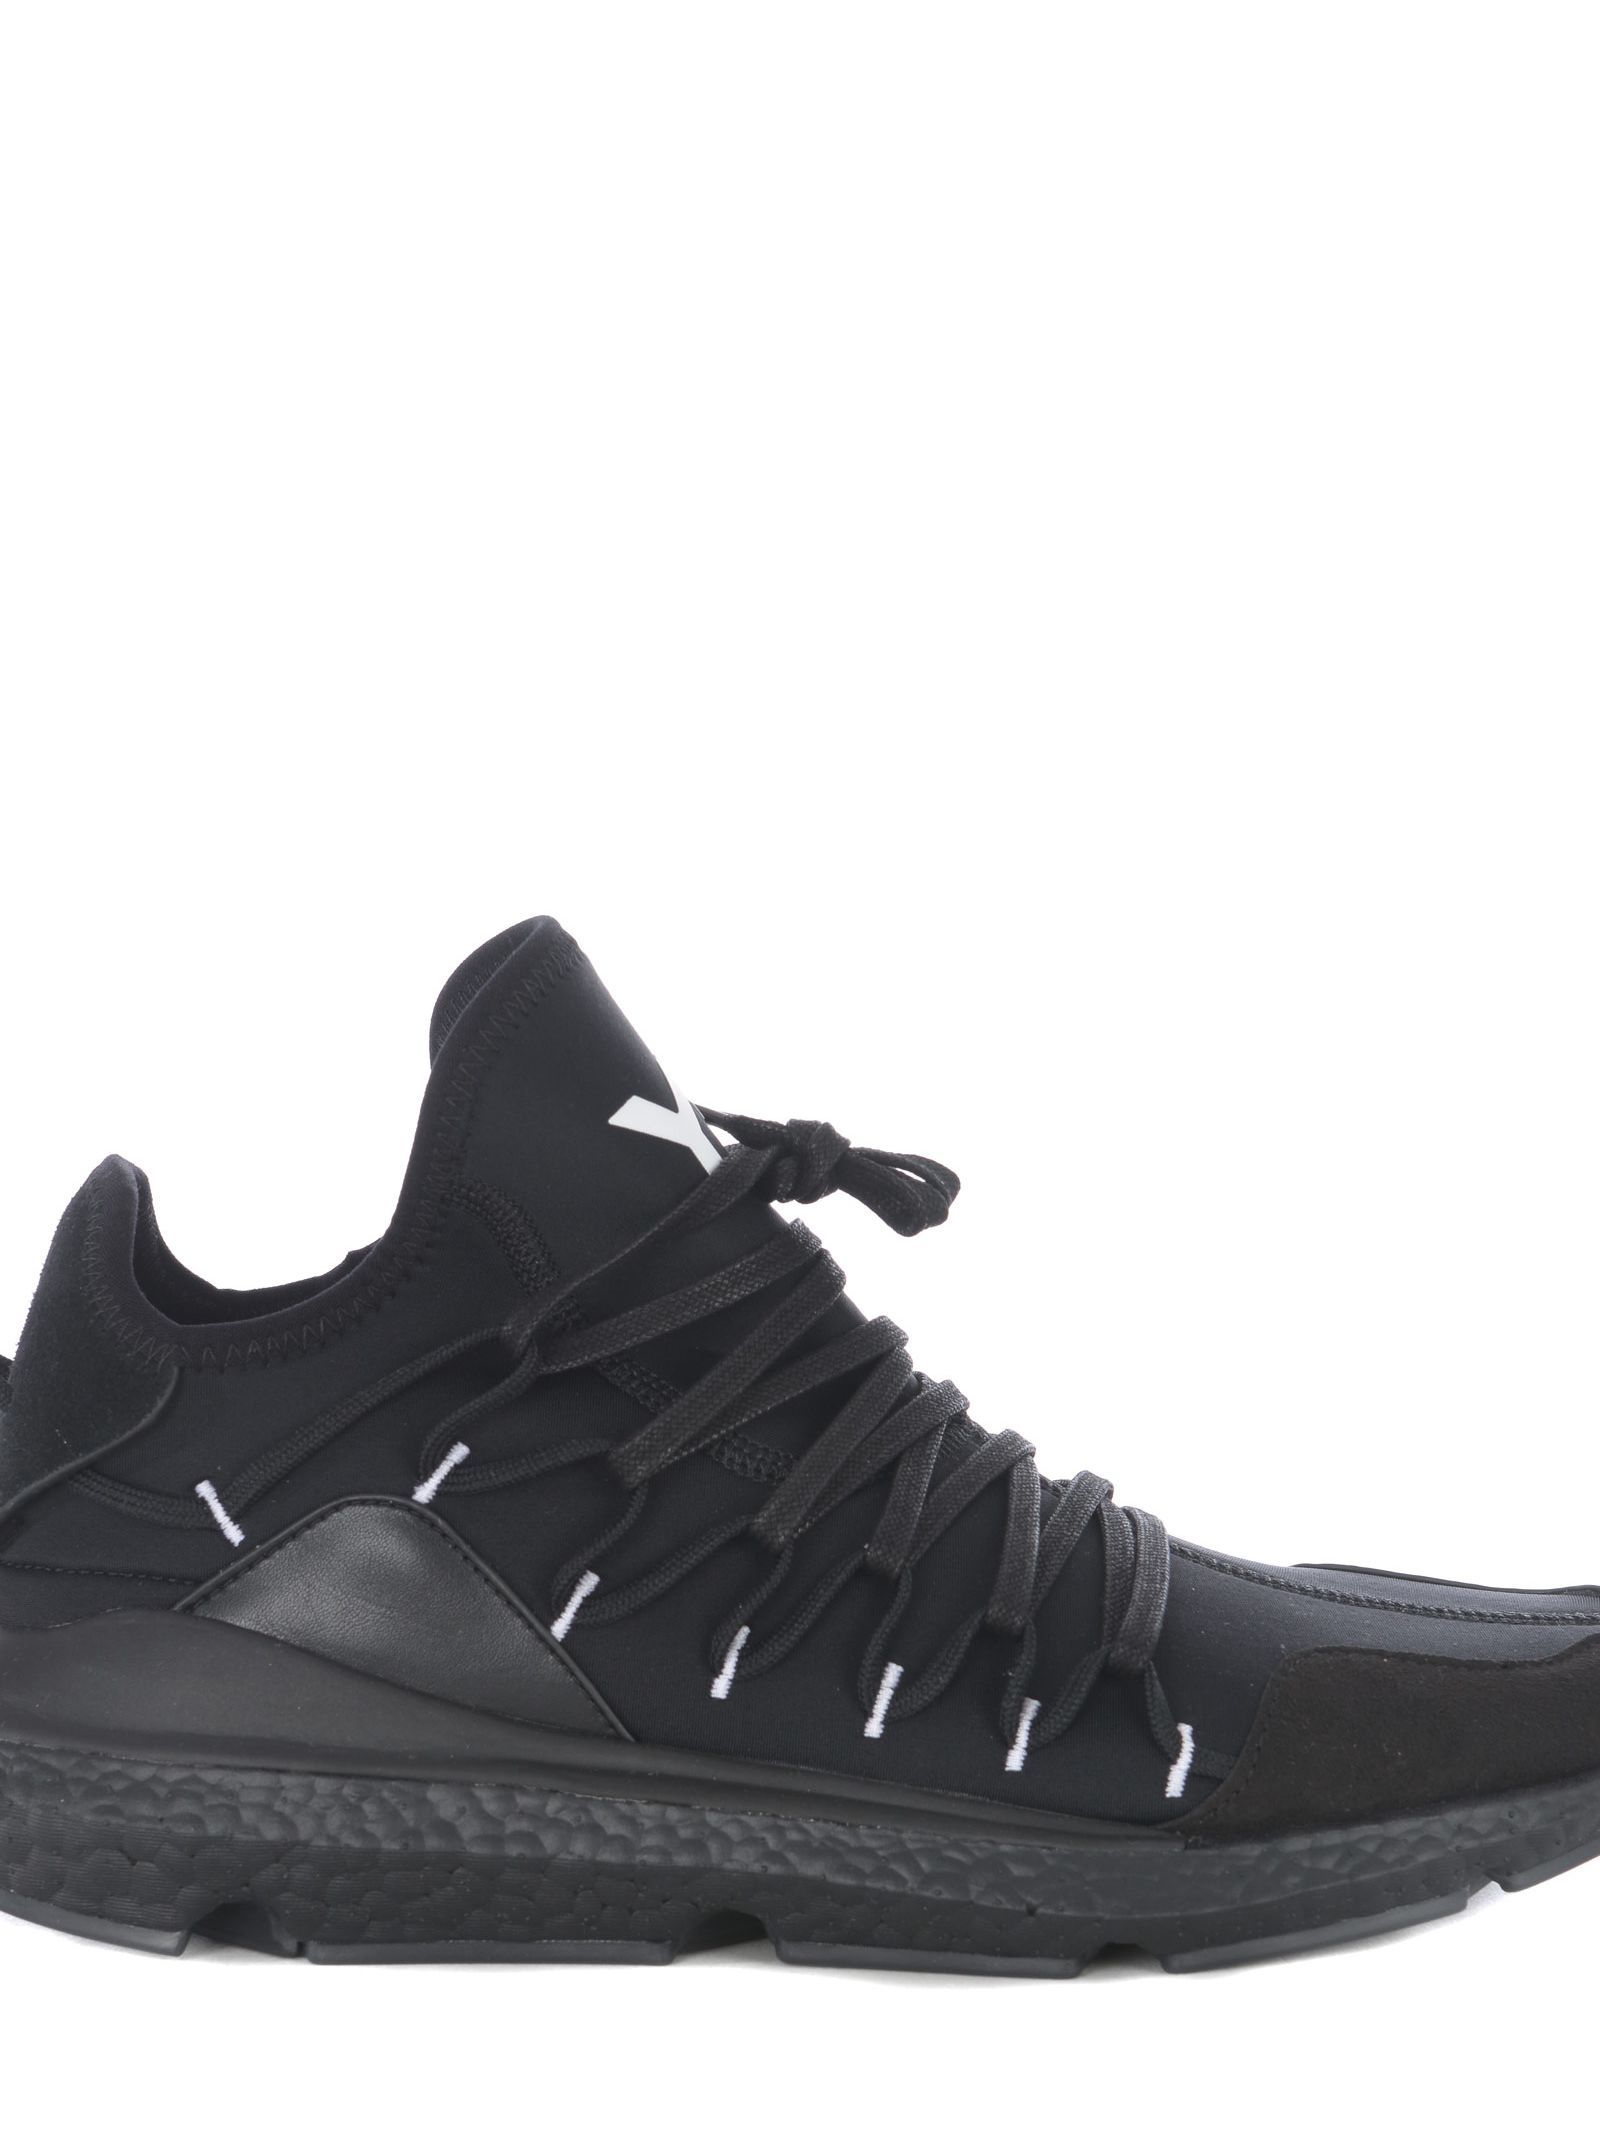 9f63f349815e Y-3 KUSARI SNEAKERS.  y-3  shoes